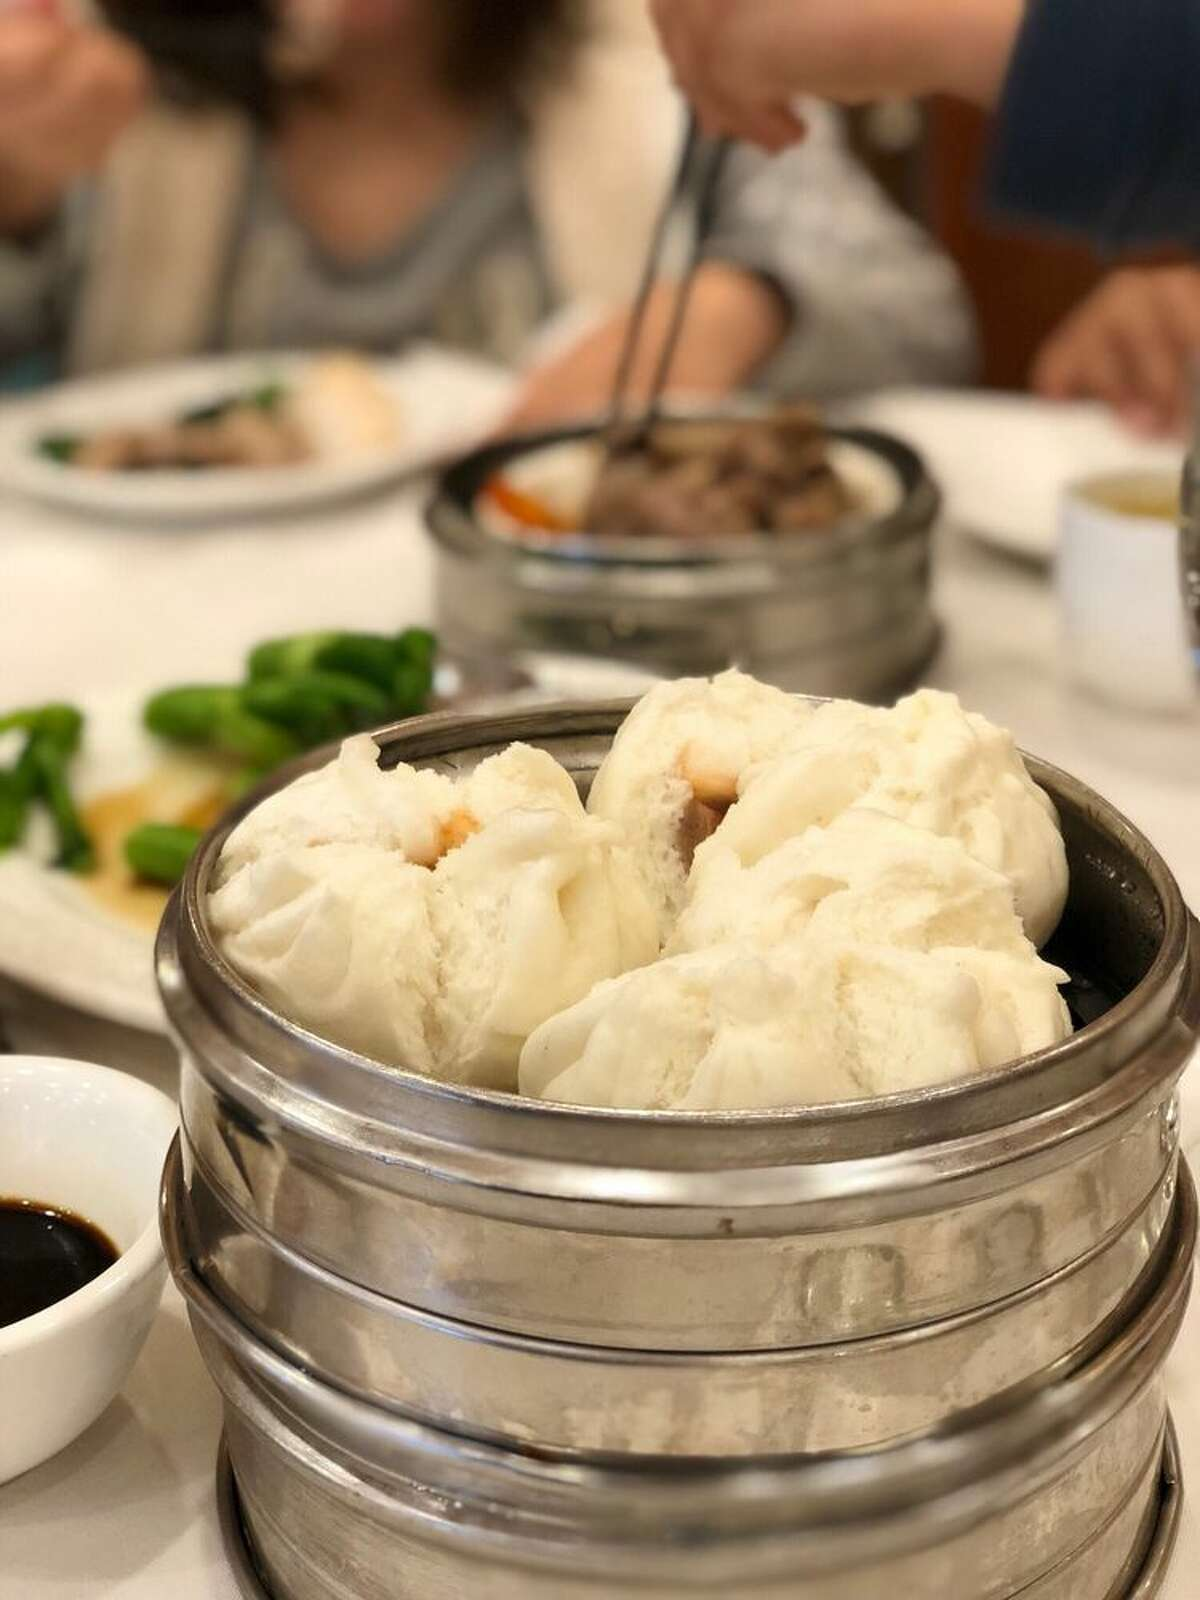 Arco Seafood Restaurant 9896 Bellaire Demerits: 24 Inspection highlights: Raw chicken stored with cooked chicken; Provide date marking for prepared food held more than 24 hours.